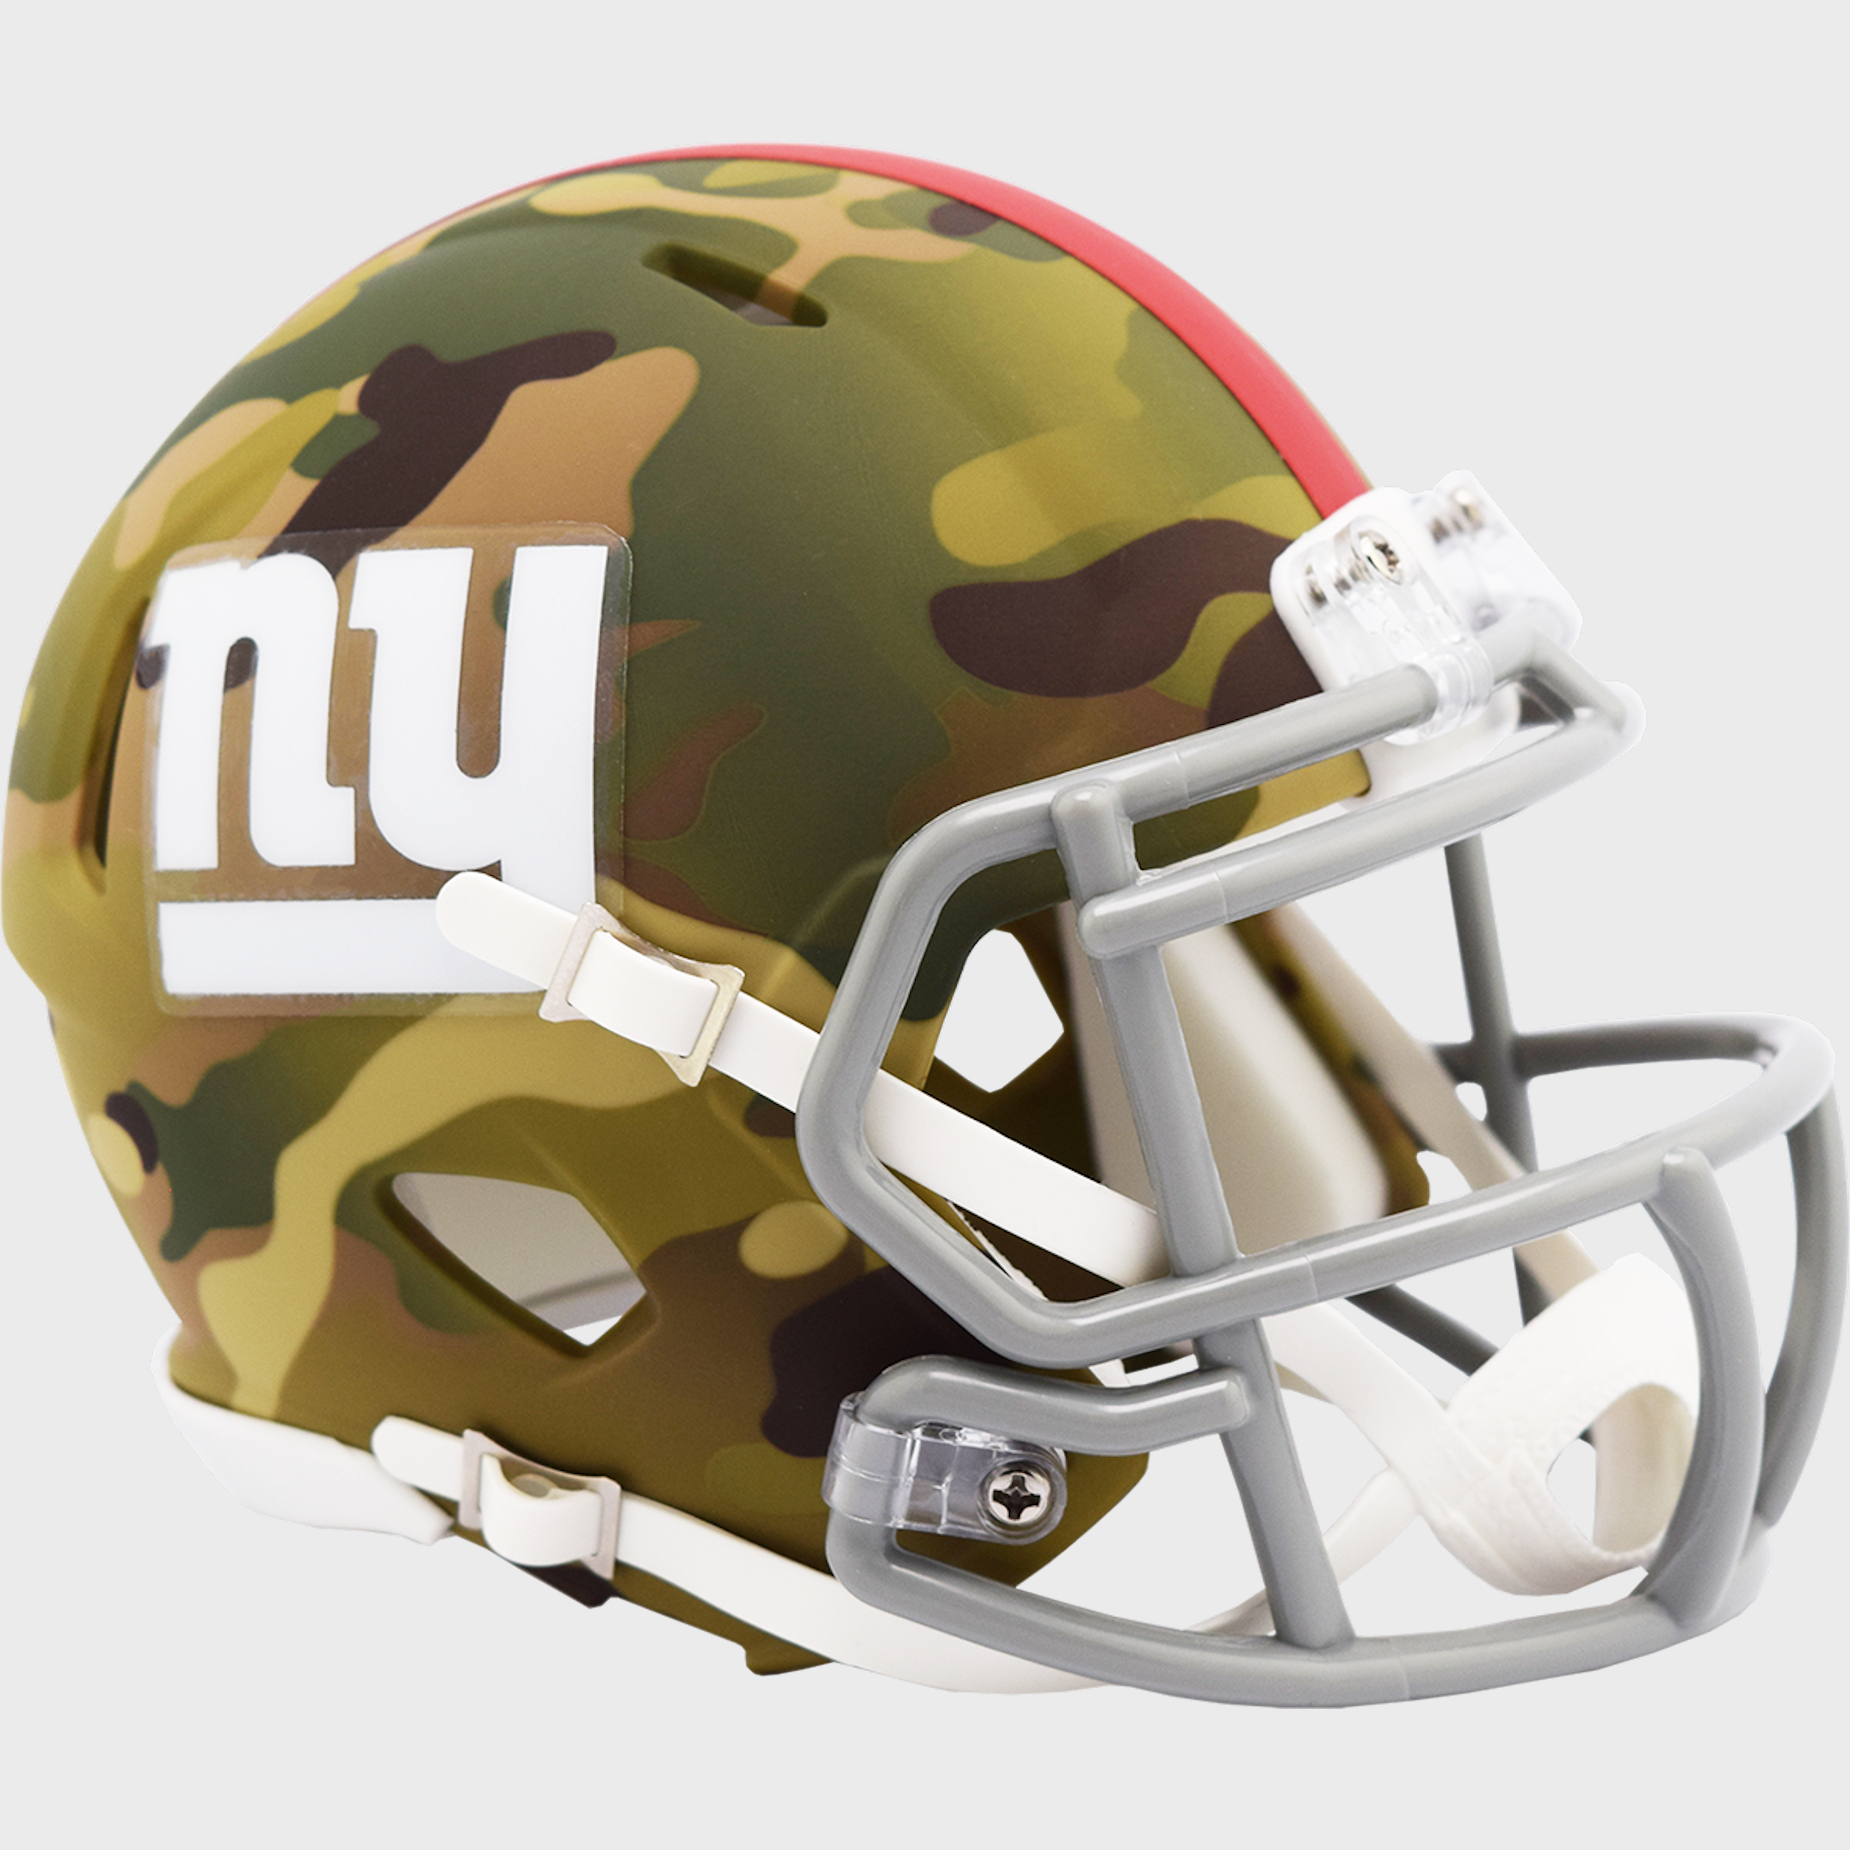 New York Giants NFL Mini Speed Football Helmet <B>CAMO</B>